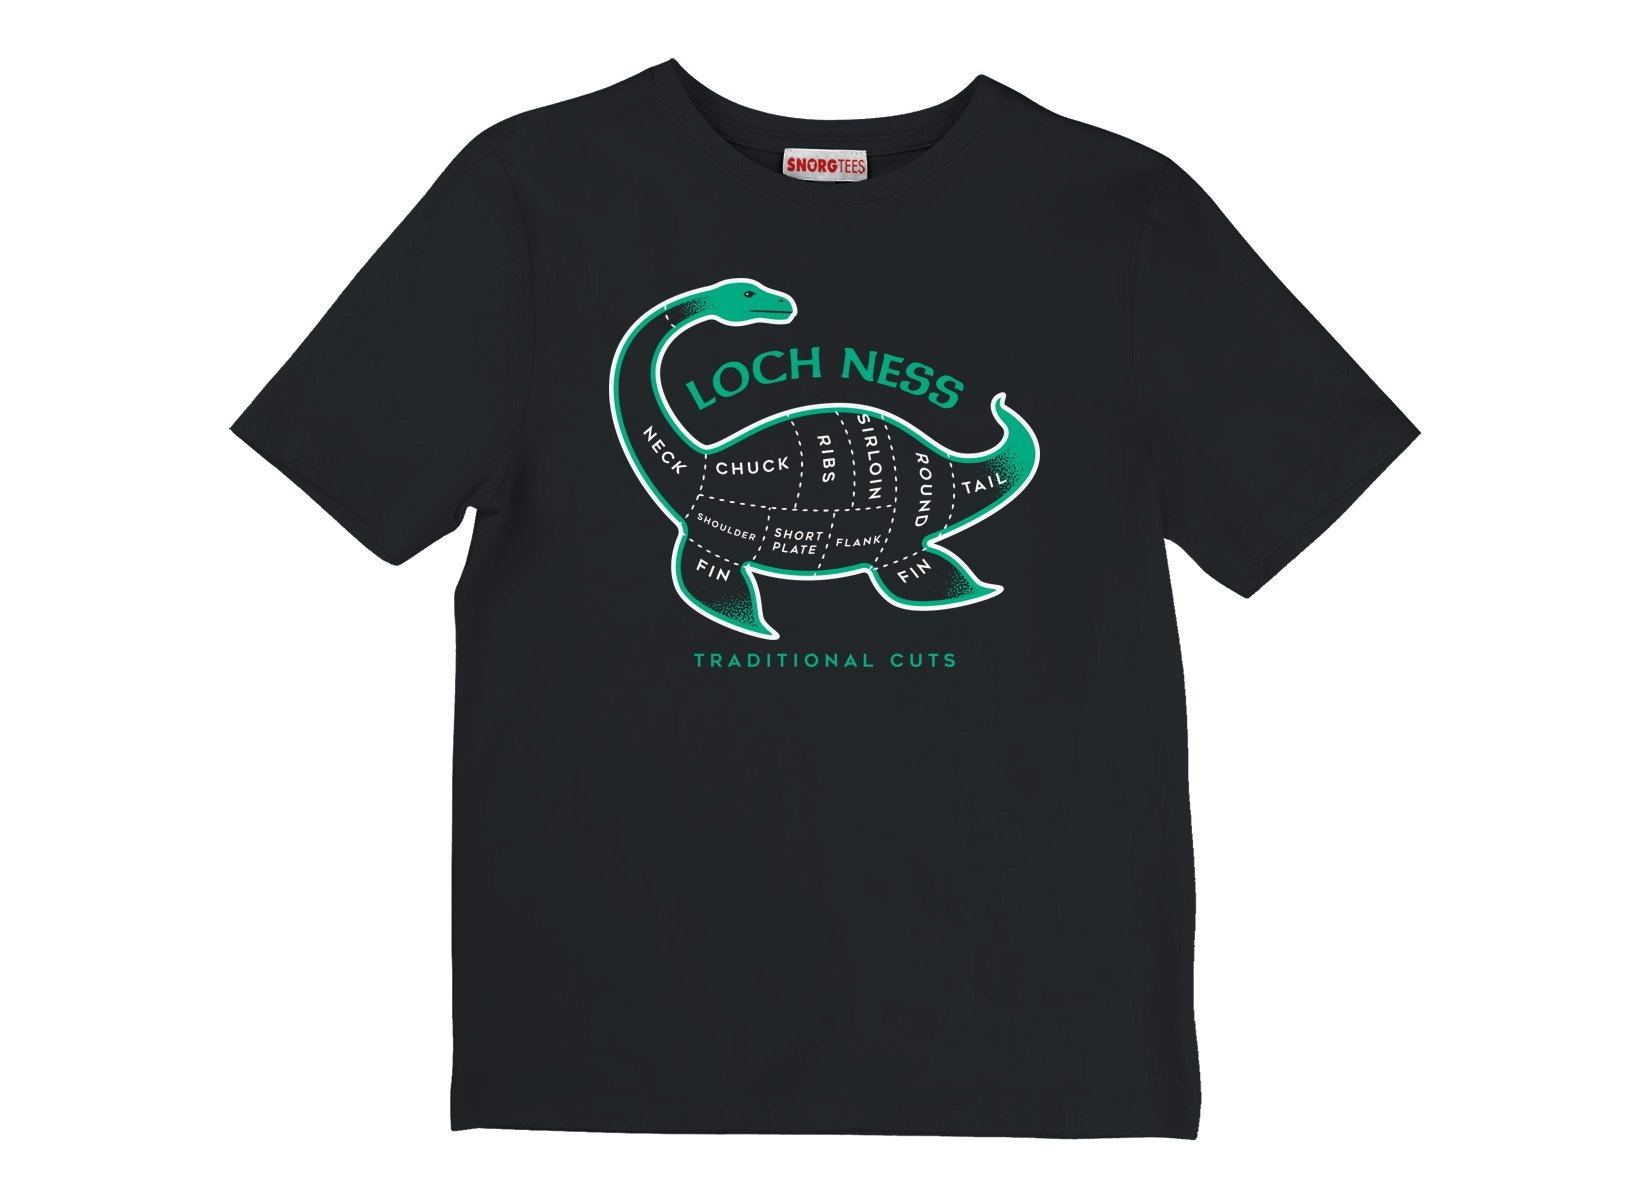 Loch Ness Traditional Cuts on Kids T-Shirt